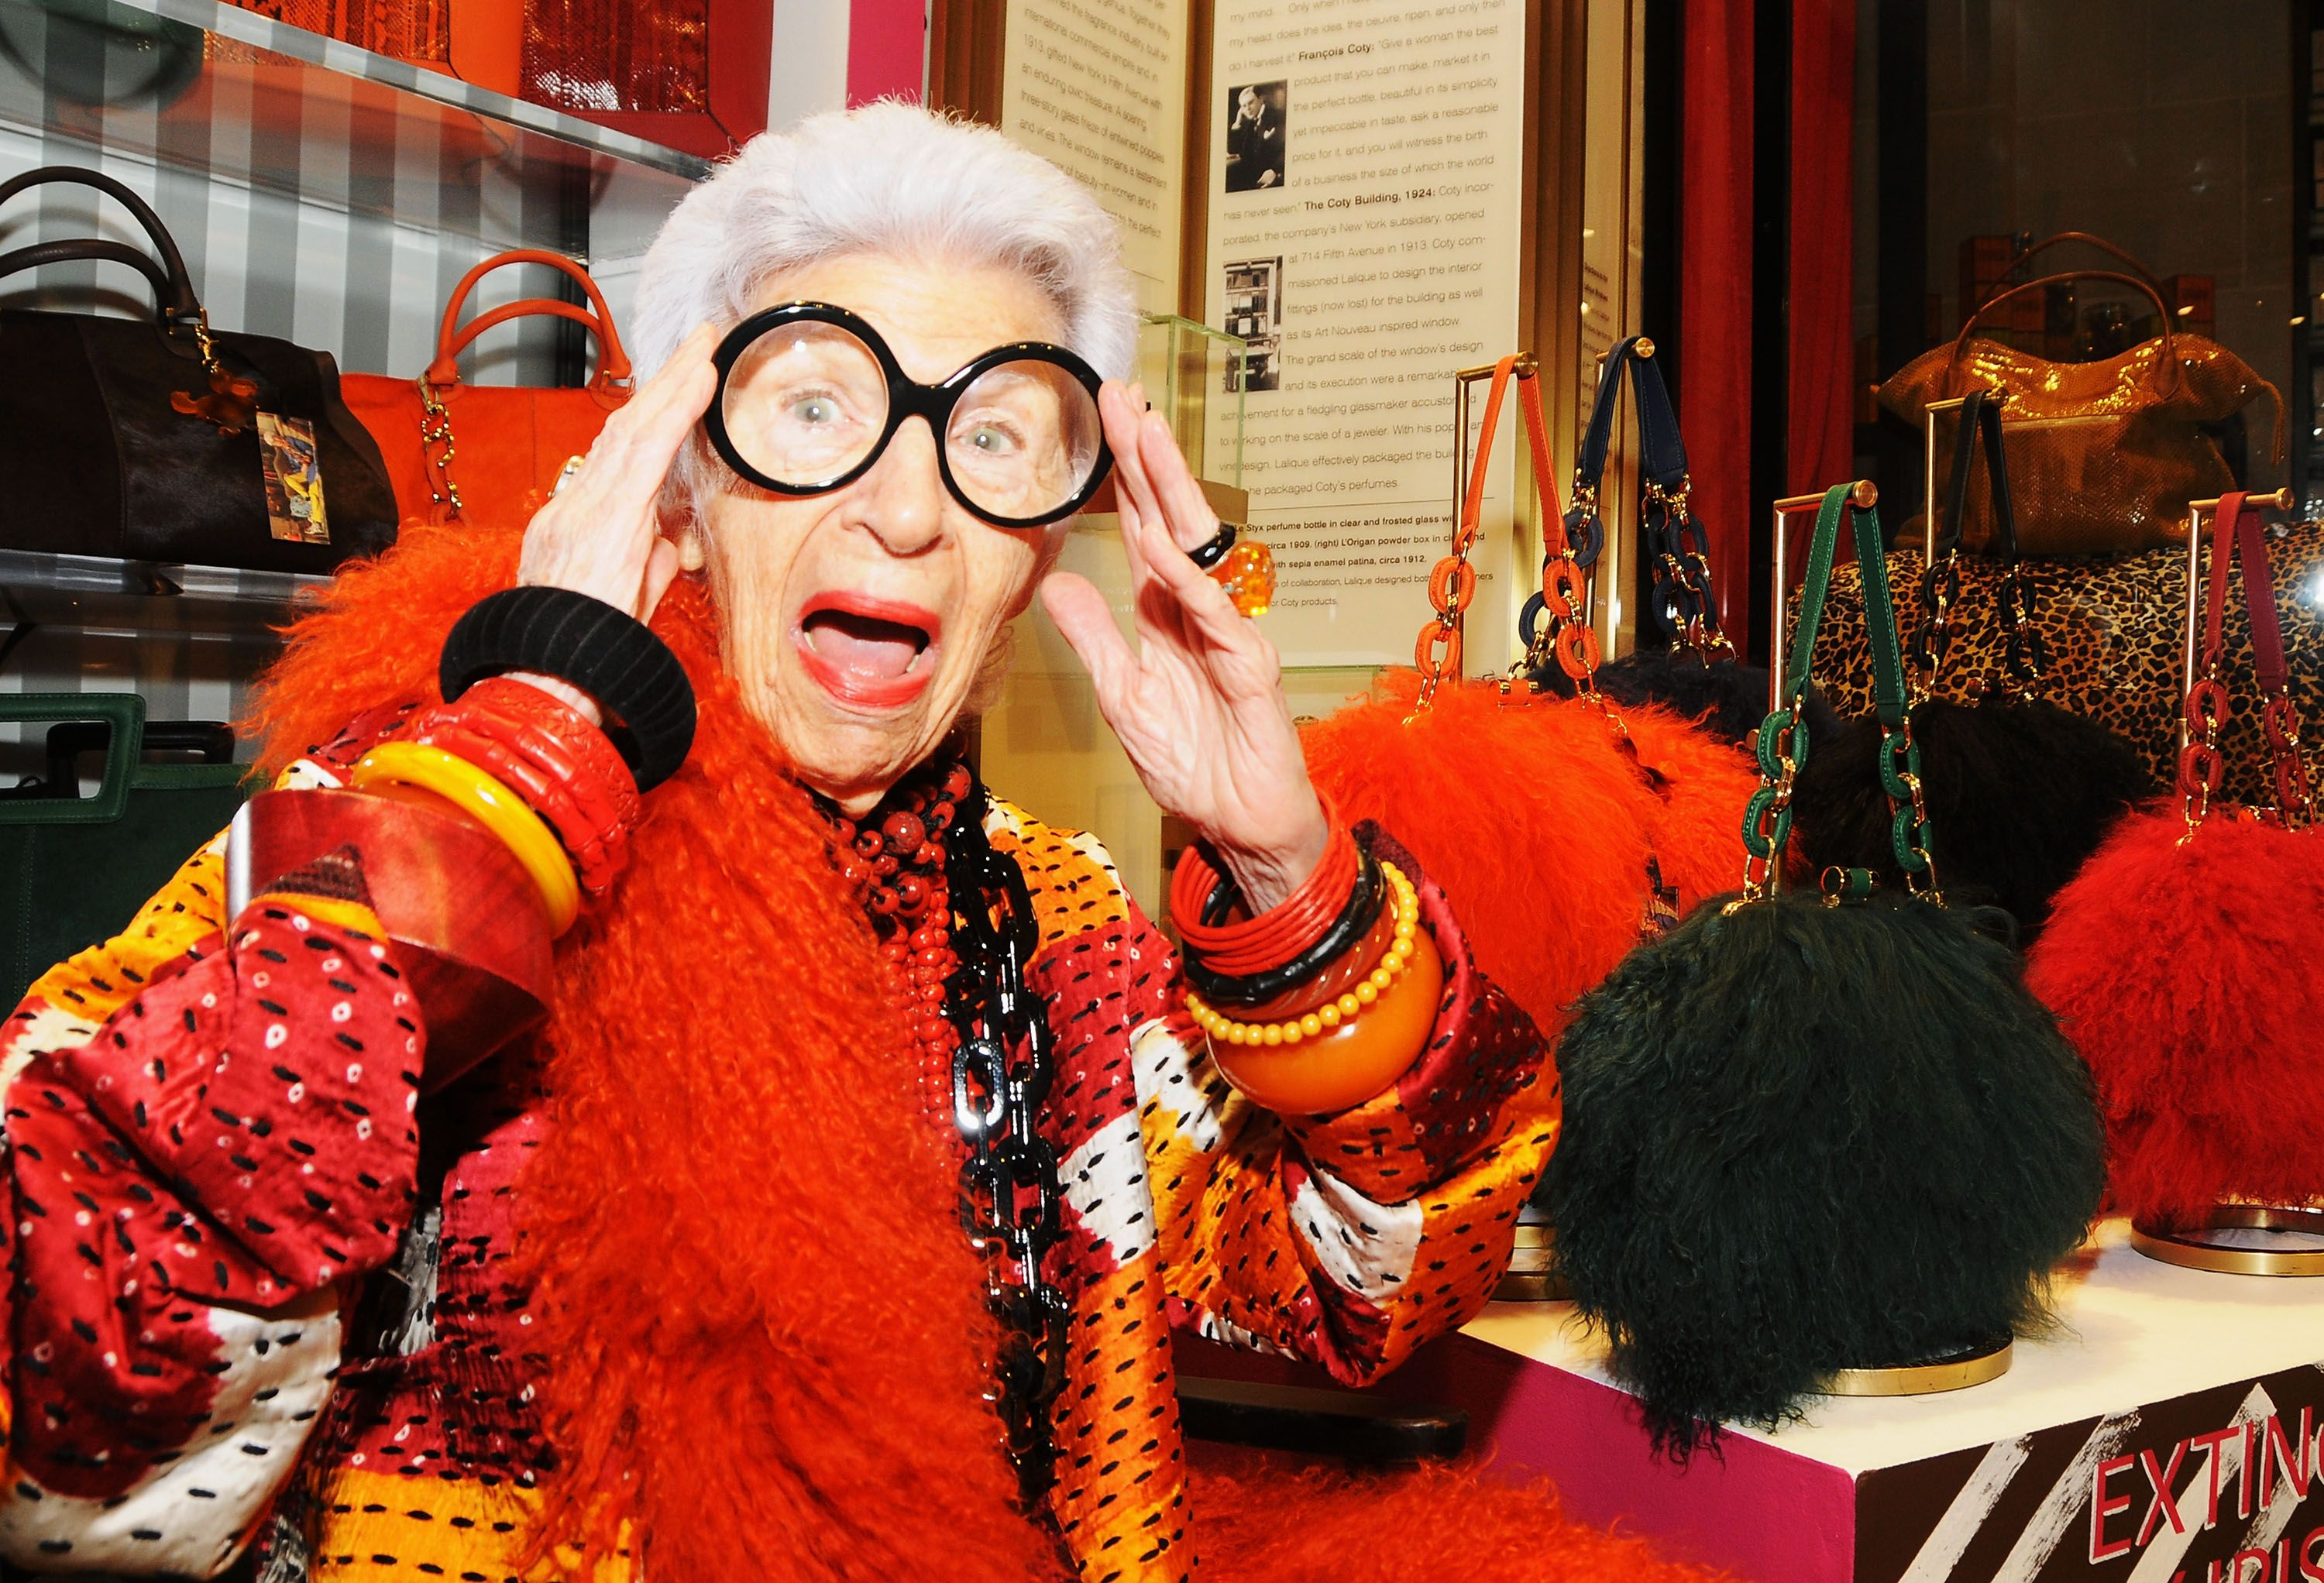 Iris Apfel is getting her own line of emojis foto